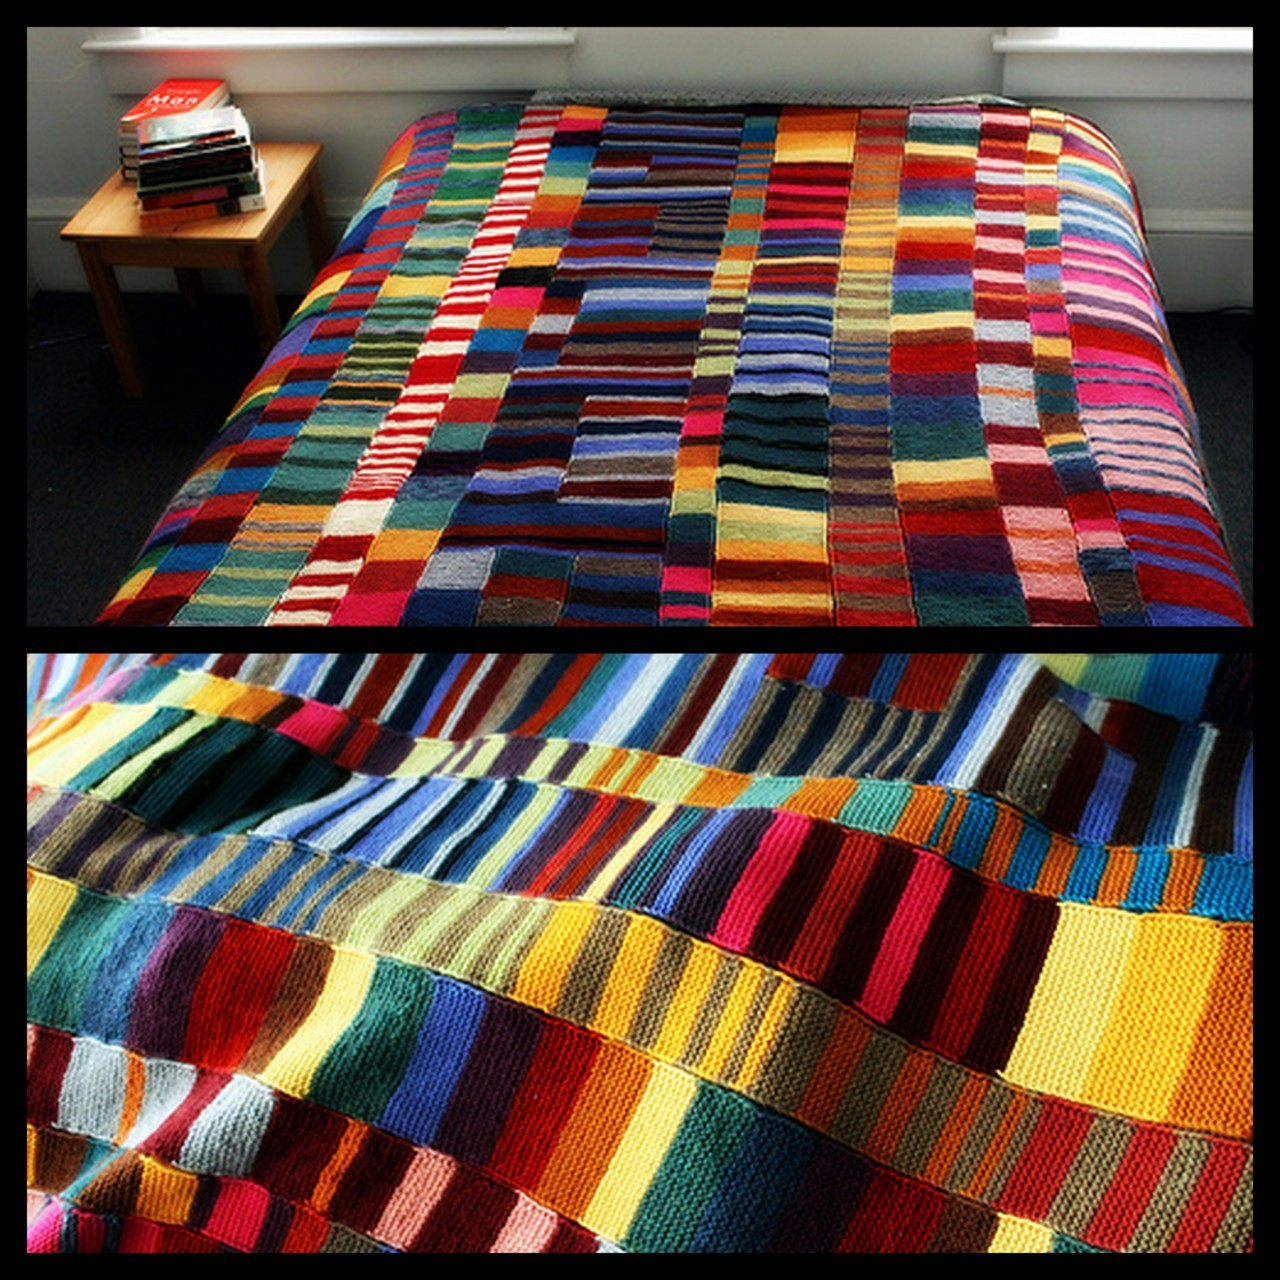 truebluemeandyou:  DIY Colorful Knit Blanket. No pattern, no pressure. Just use up your yarn and knit scarves using the garter stitch (knit every row) and seam them together. A good post on knitting what you love, and more directions at Completely Cauchy here.